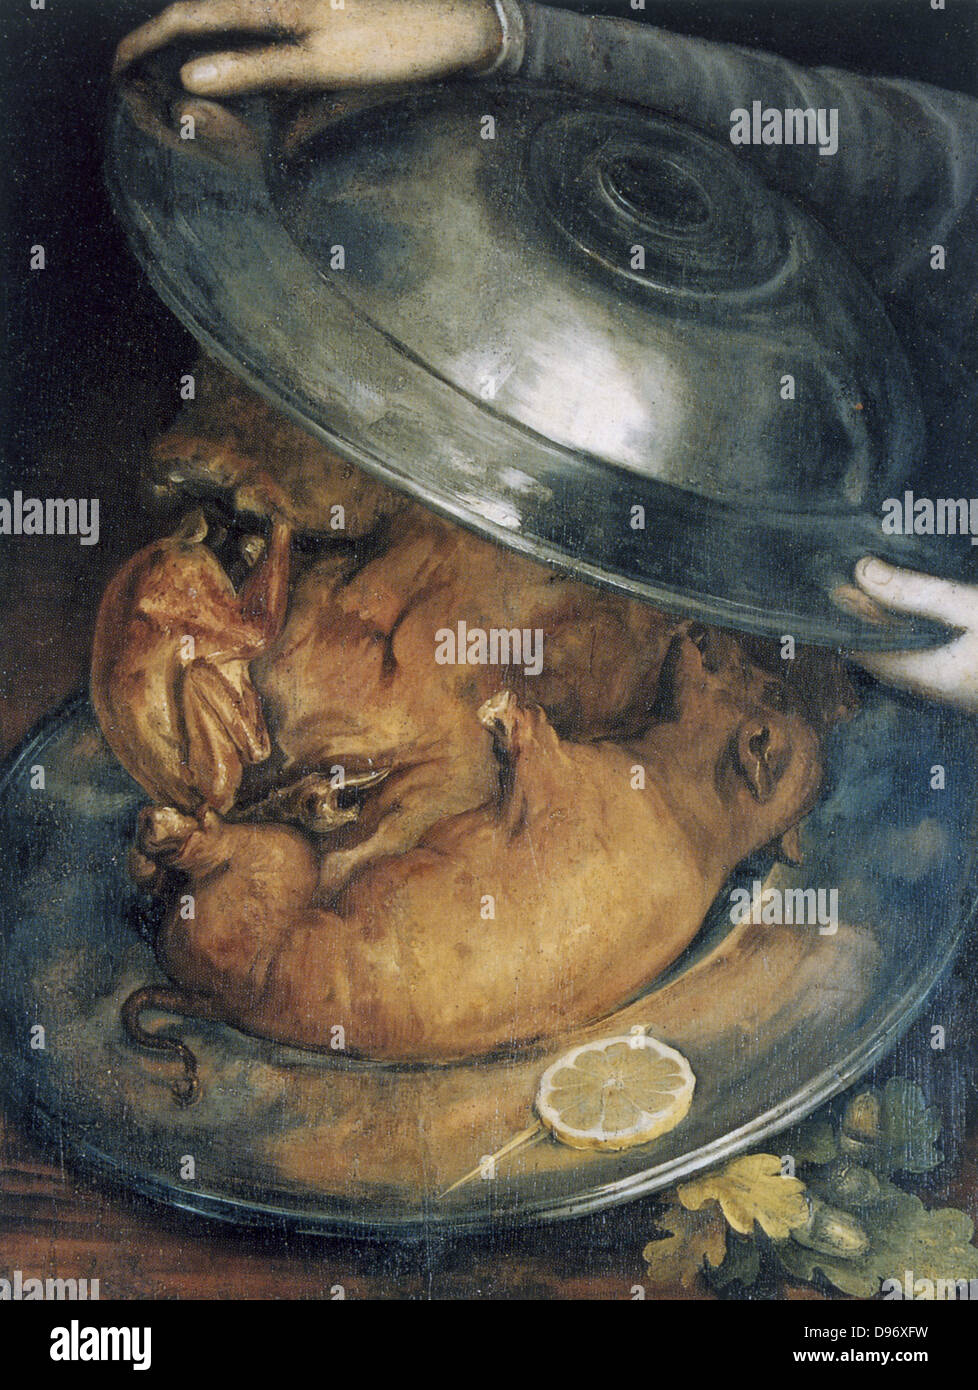 The Cook', still life c1570. If turned upside-down the cook's portrait is composed of two dishes and roast - Stock Image